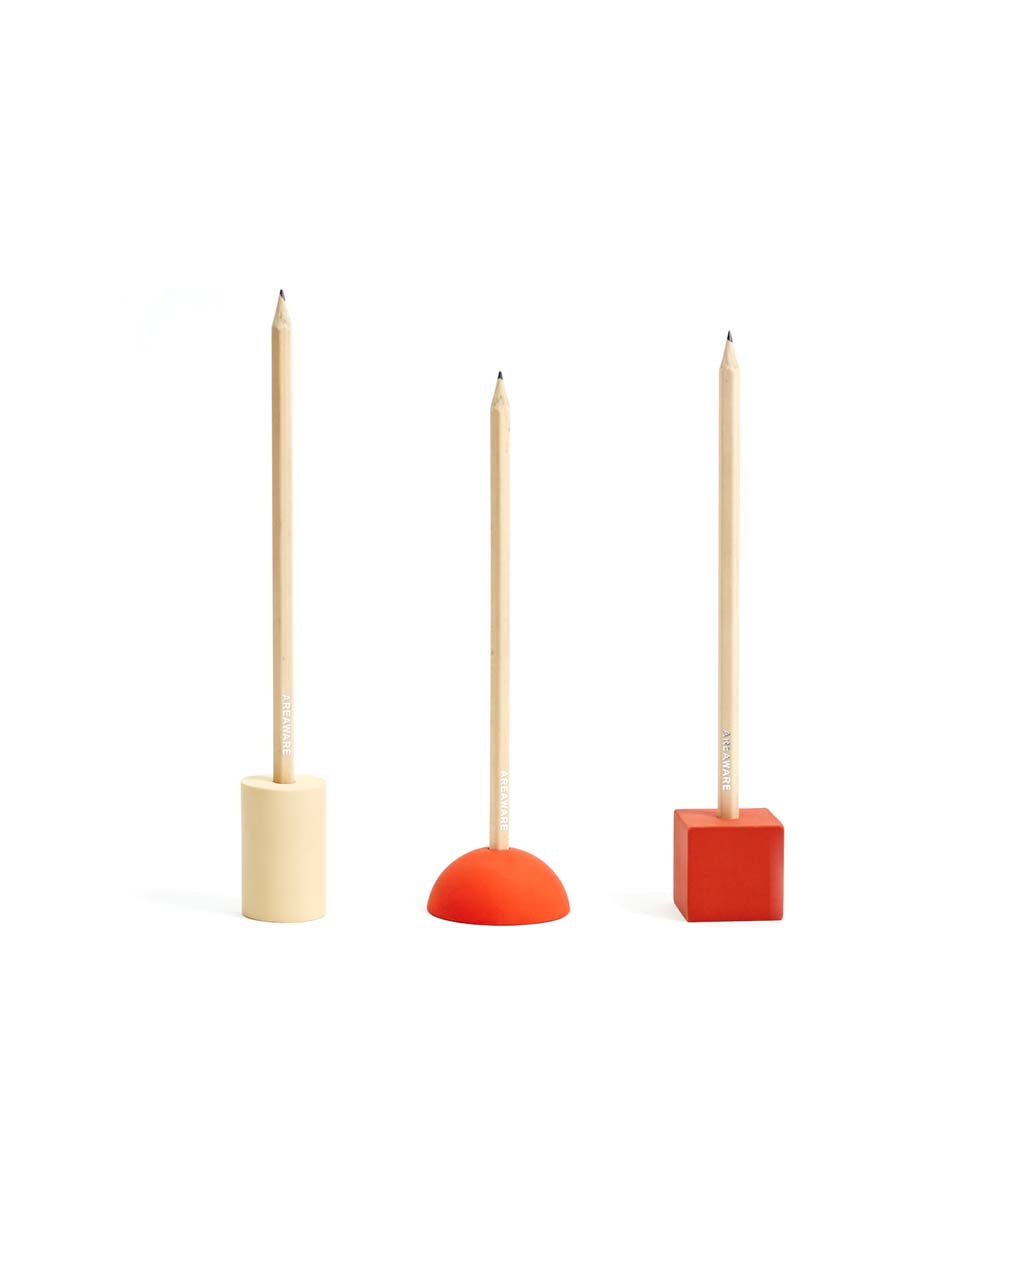 The Eraser Pencil Stand Set features natural colored pencils with red and white erasers.